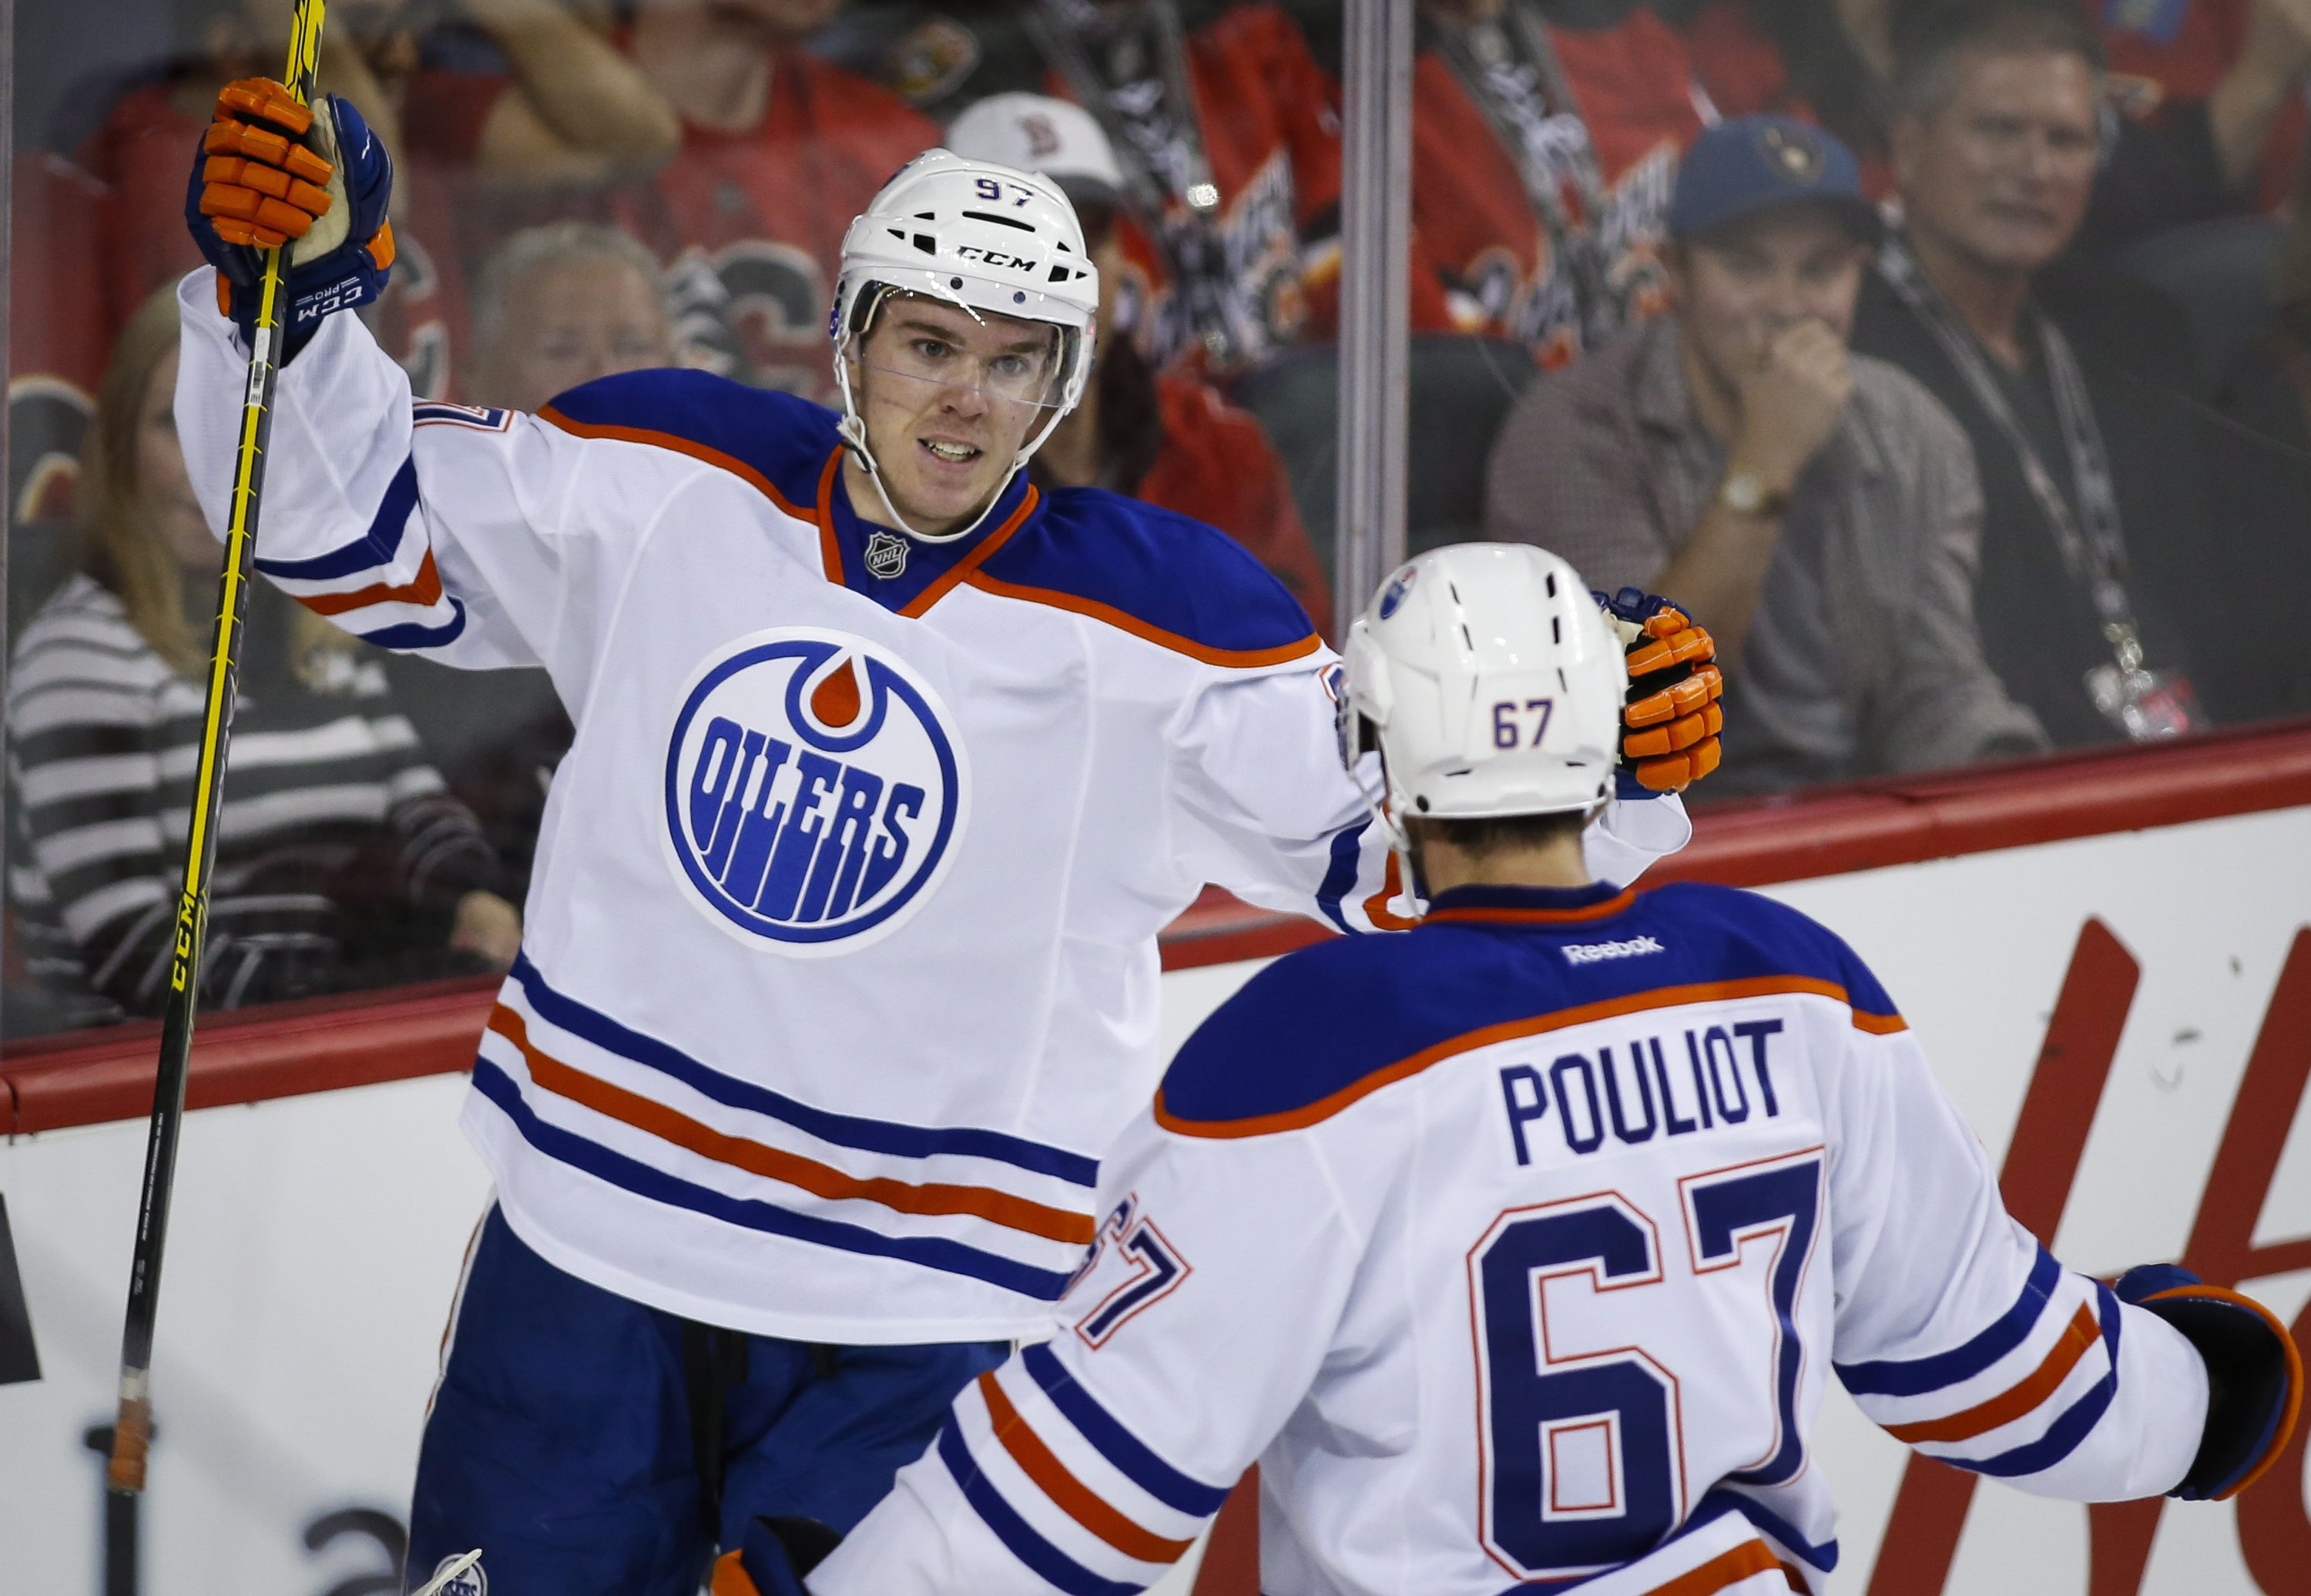 Edmonton Oliers' Connor McDavid, left, celebrates his goal with teammate Benoit Pouliot (67) during the second period of an NHL hockey game against the Calgary Flames on Saturday, Oct. 17, 2015, in Calgary, Alberta. (Jeff McIntosh/The Canadian Press via A